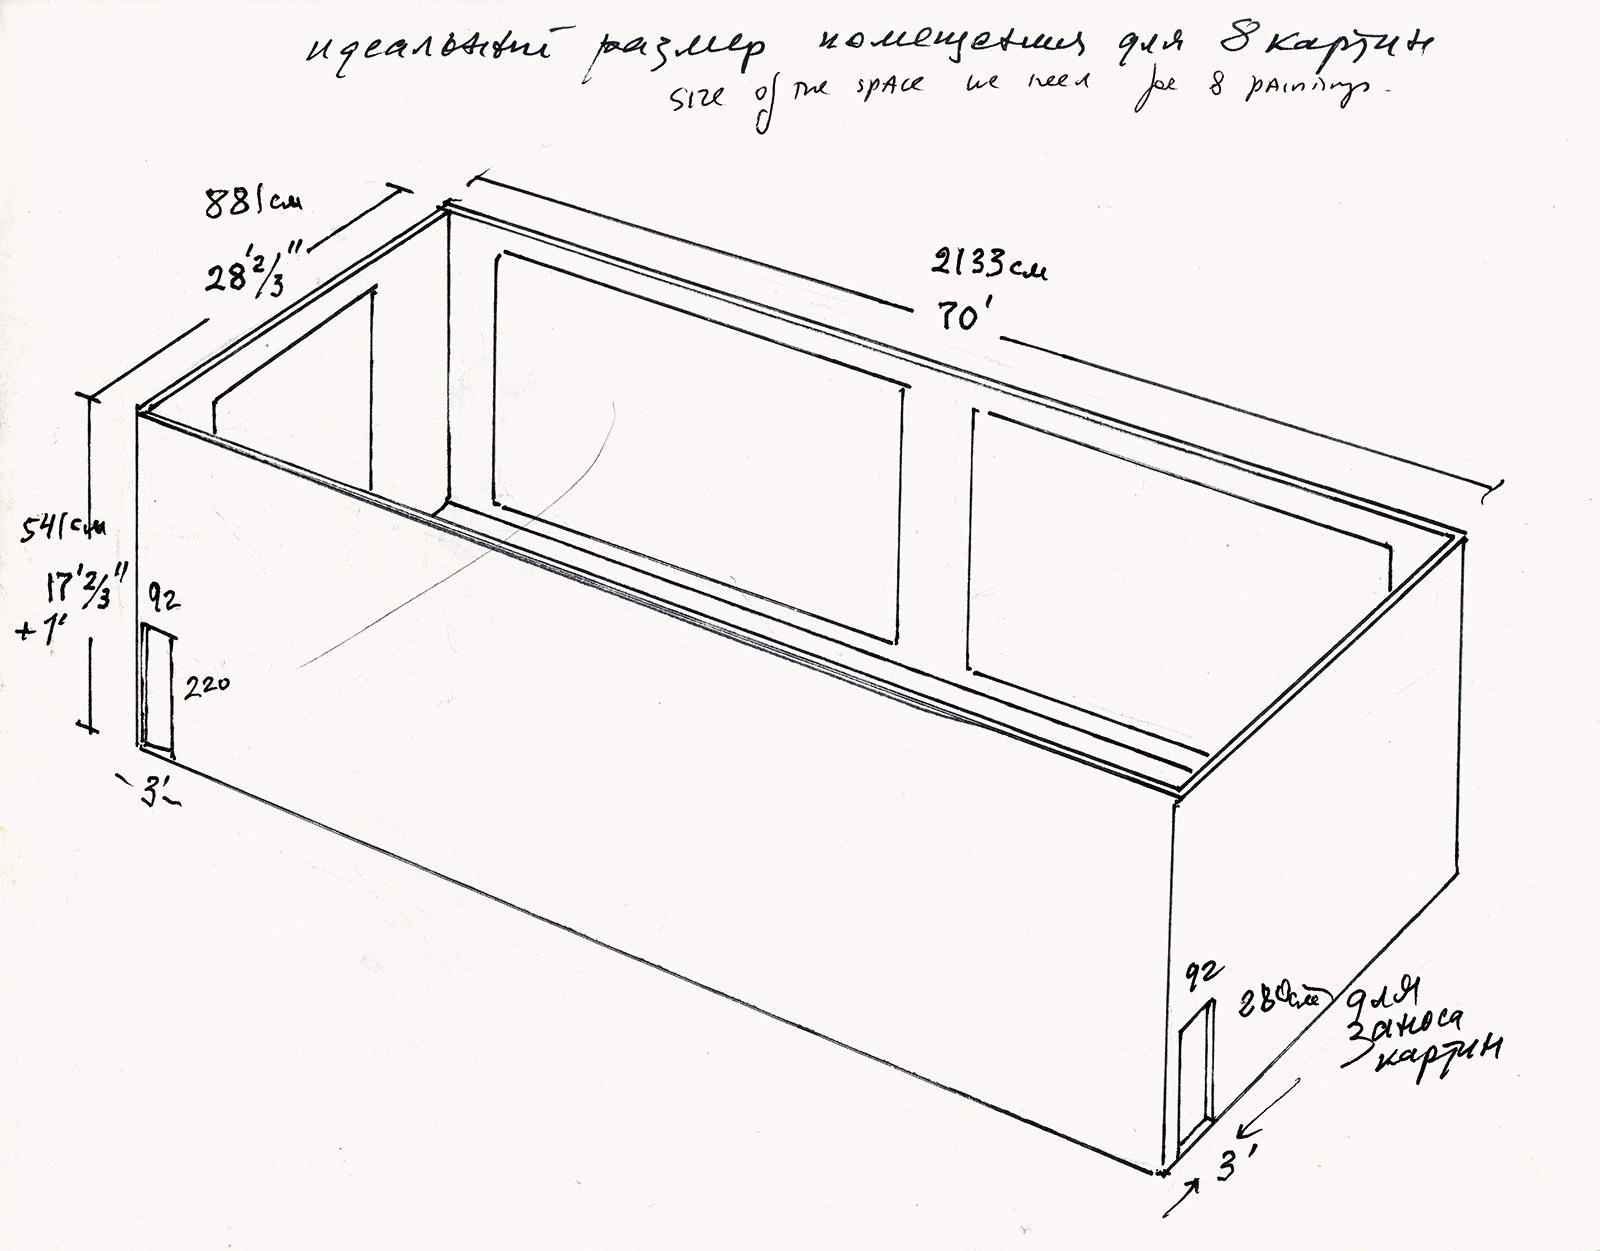 Technical-drawing-with-measurements-of-the-exterior-of-the-chapel.jpg